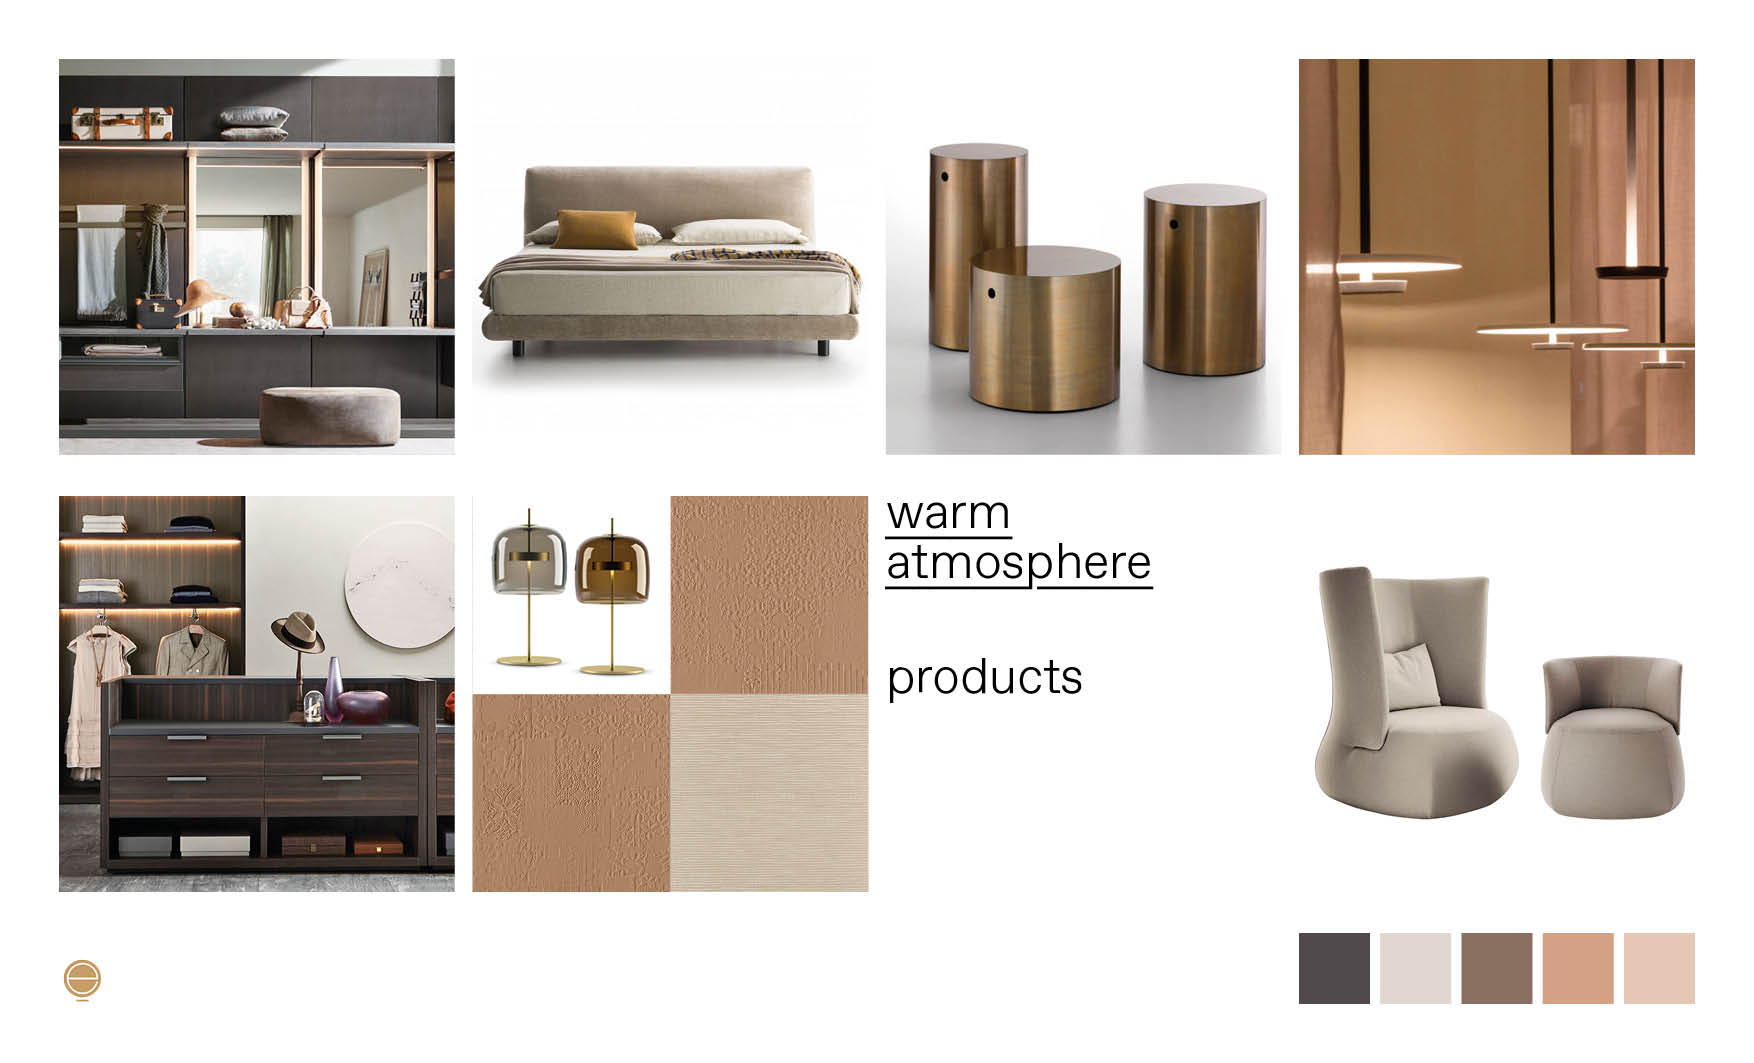 warm atmosphere Italian modern bedroom furniture composition designed by Esperiri Milano